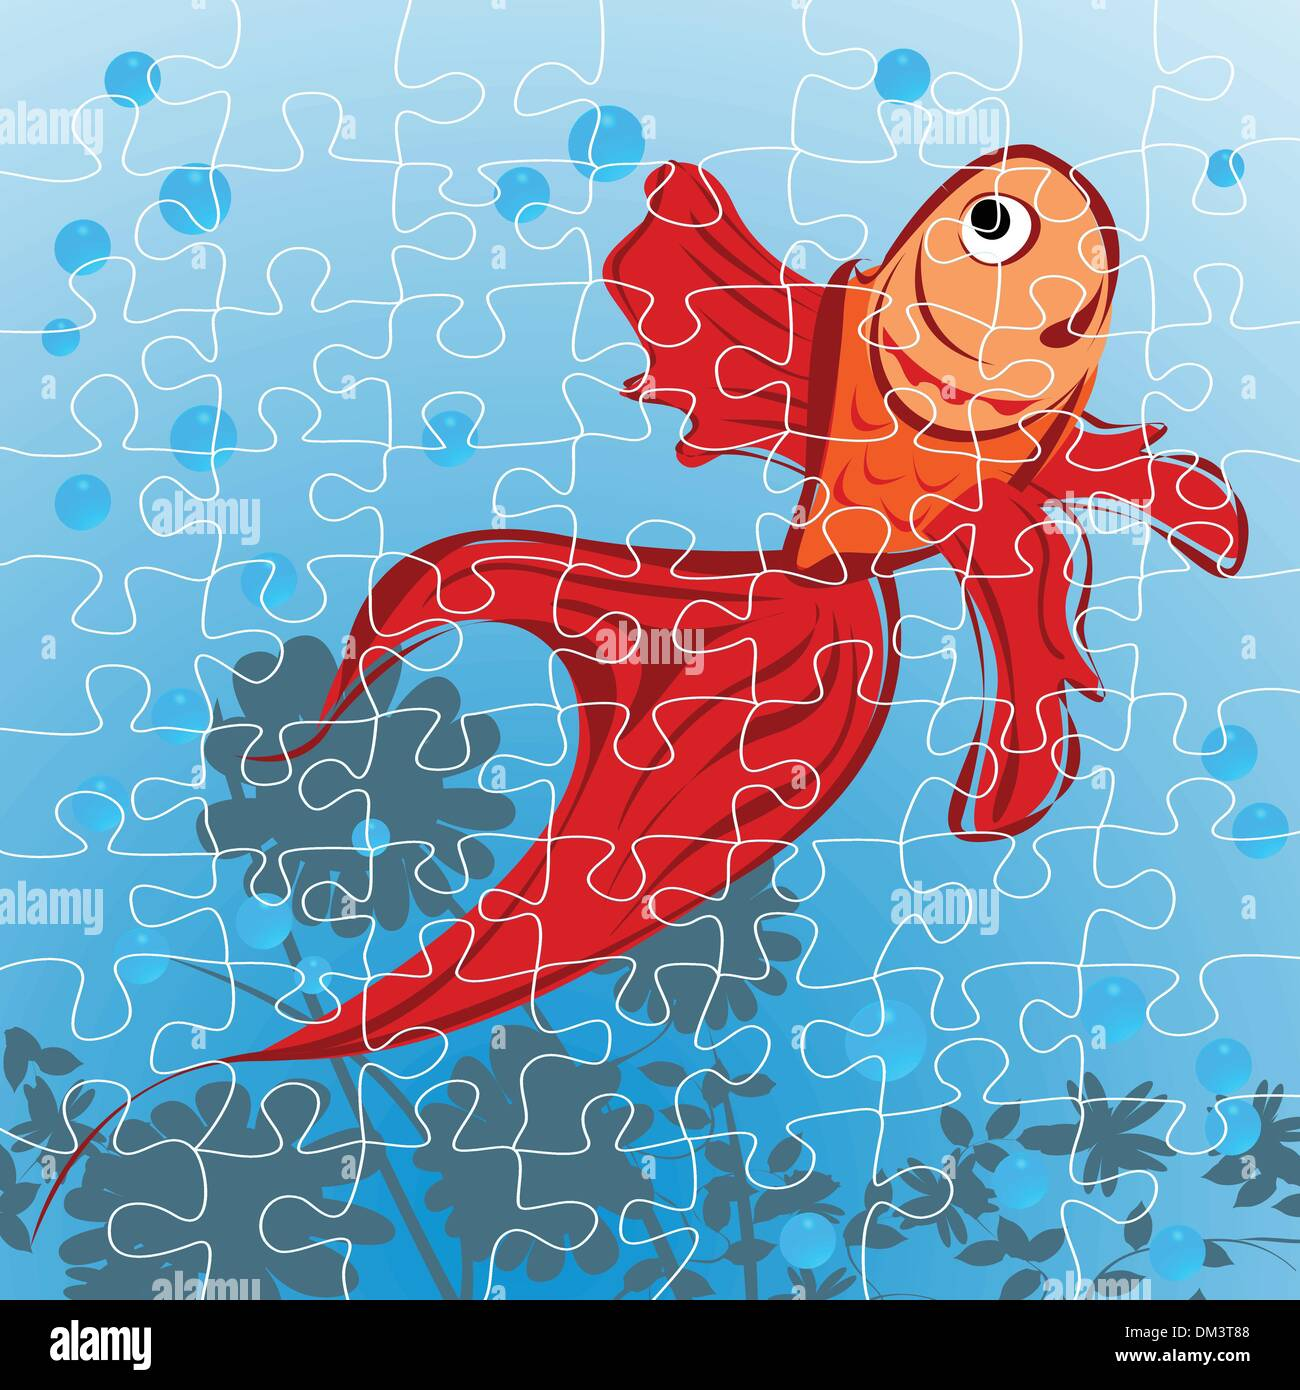 Red fish puzzle Stock Vector Art & Illustration, Vector Image ...